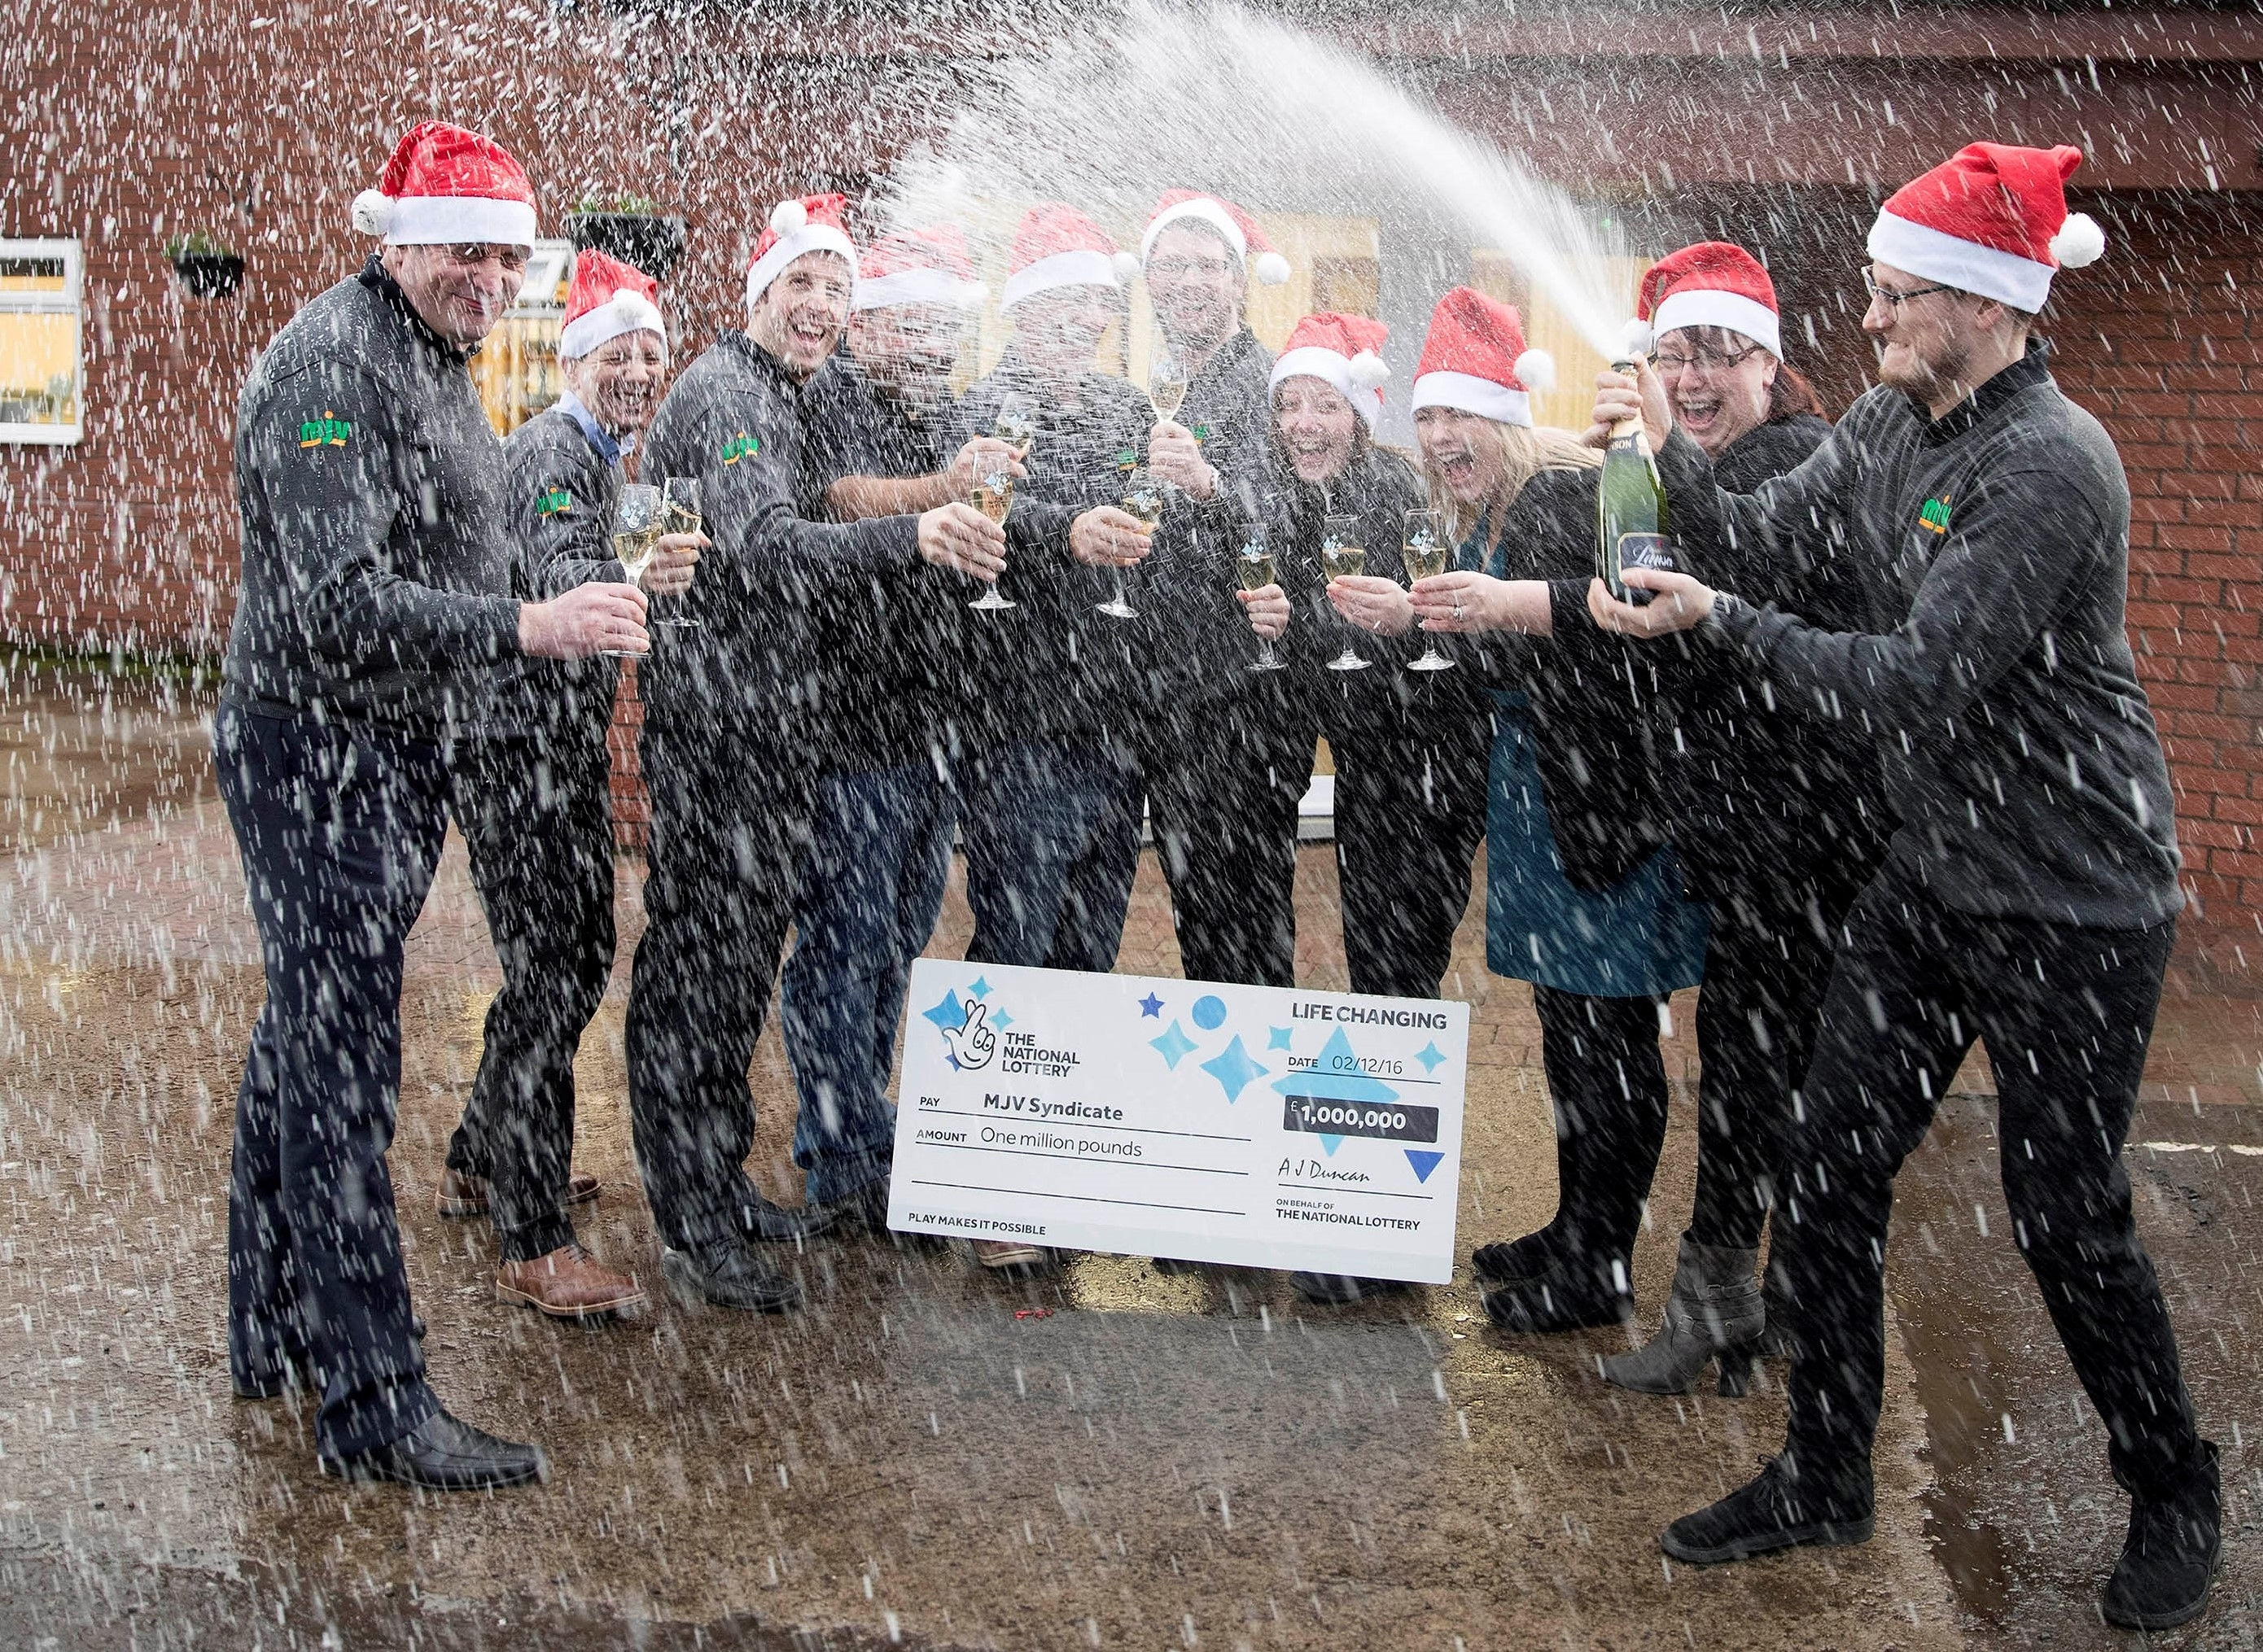 From left to right: Graeme Lacey, Bruce Richards, Darren Graham, Gareth Dack, John Cunningham, Philip Souter, Colleen Mallis, Louise Robertson, Gail Brown and Stephen Robertson, some of the 16 ventilation workers who won £1 million in a lottery syndicate.